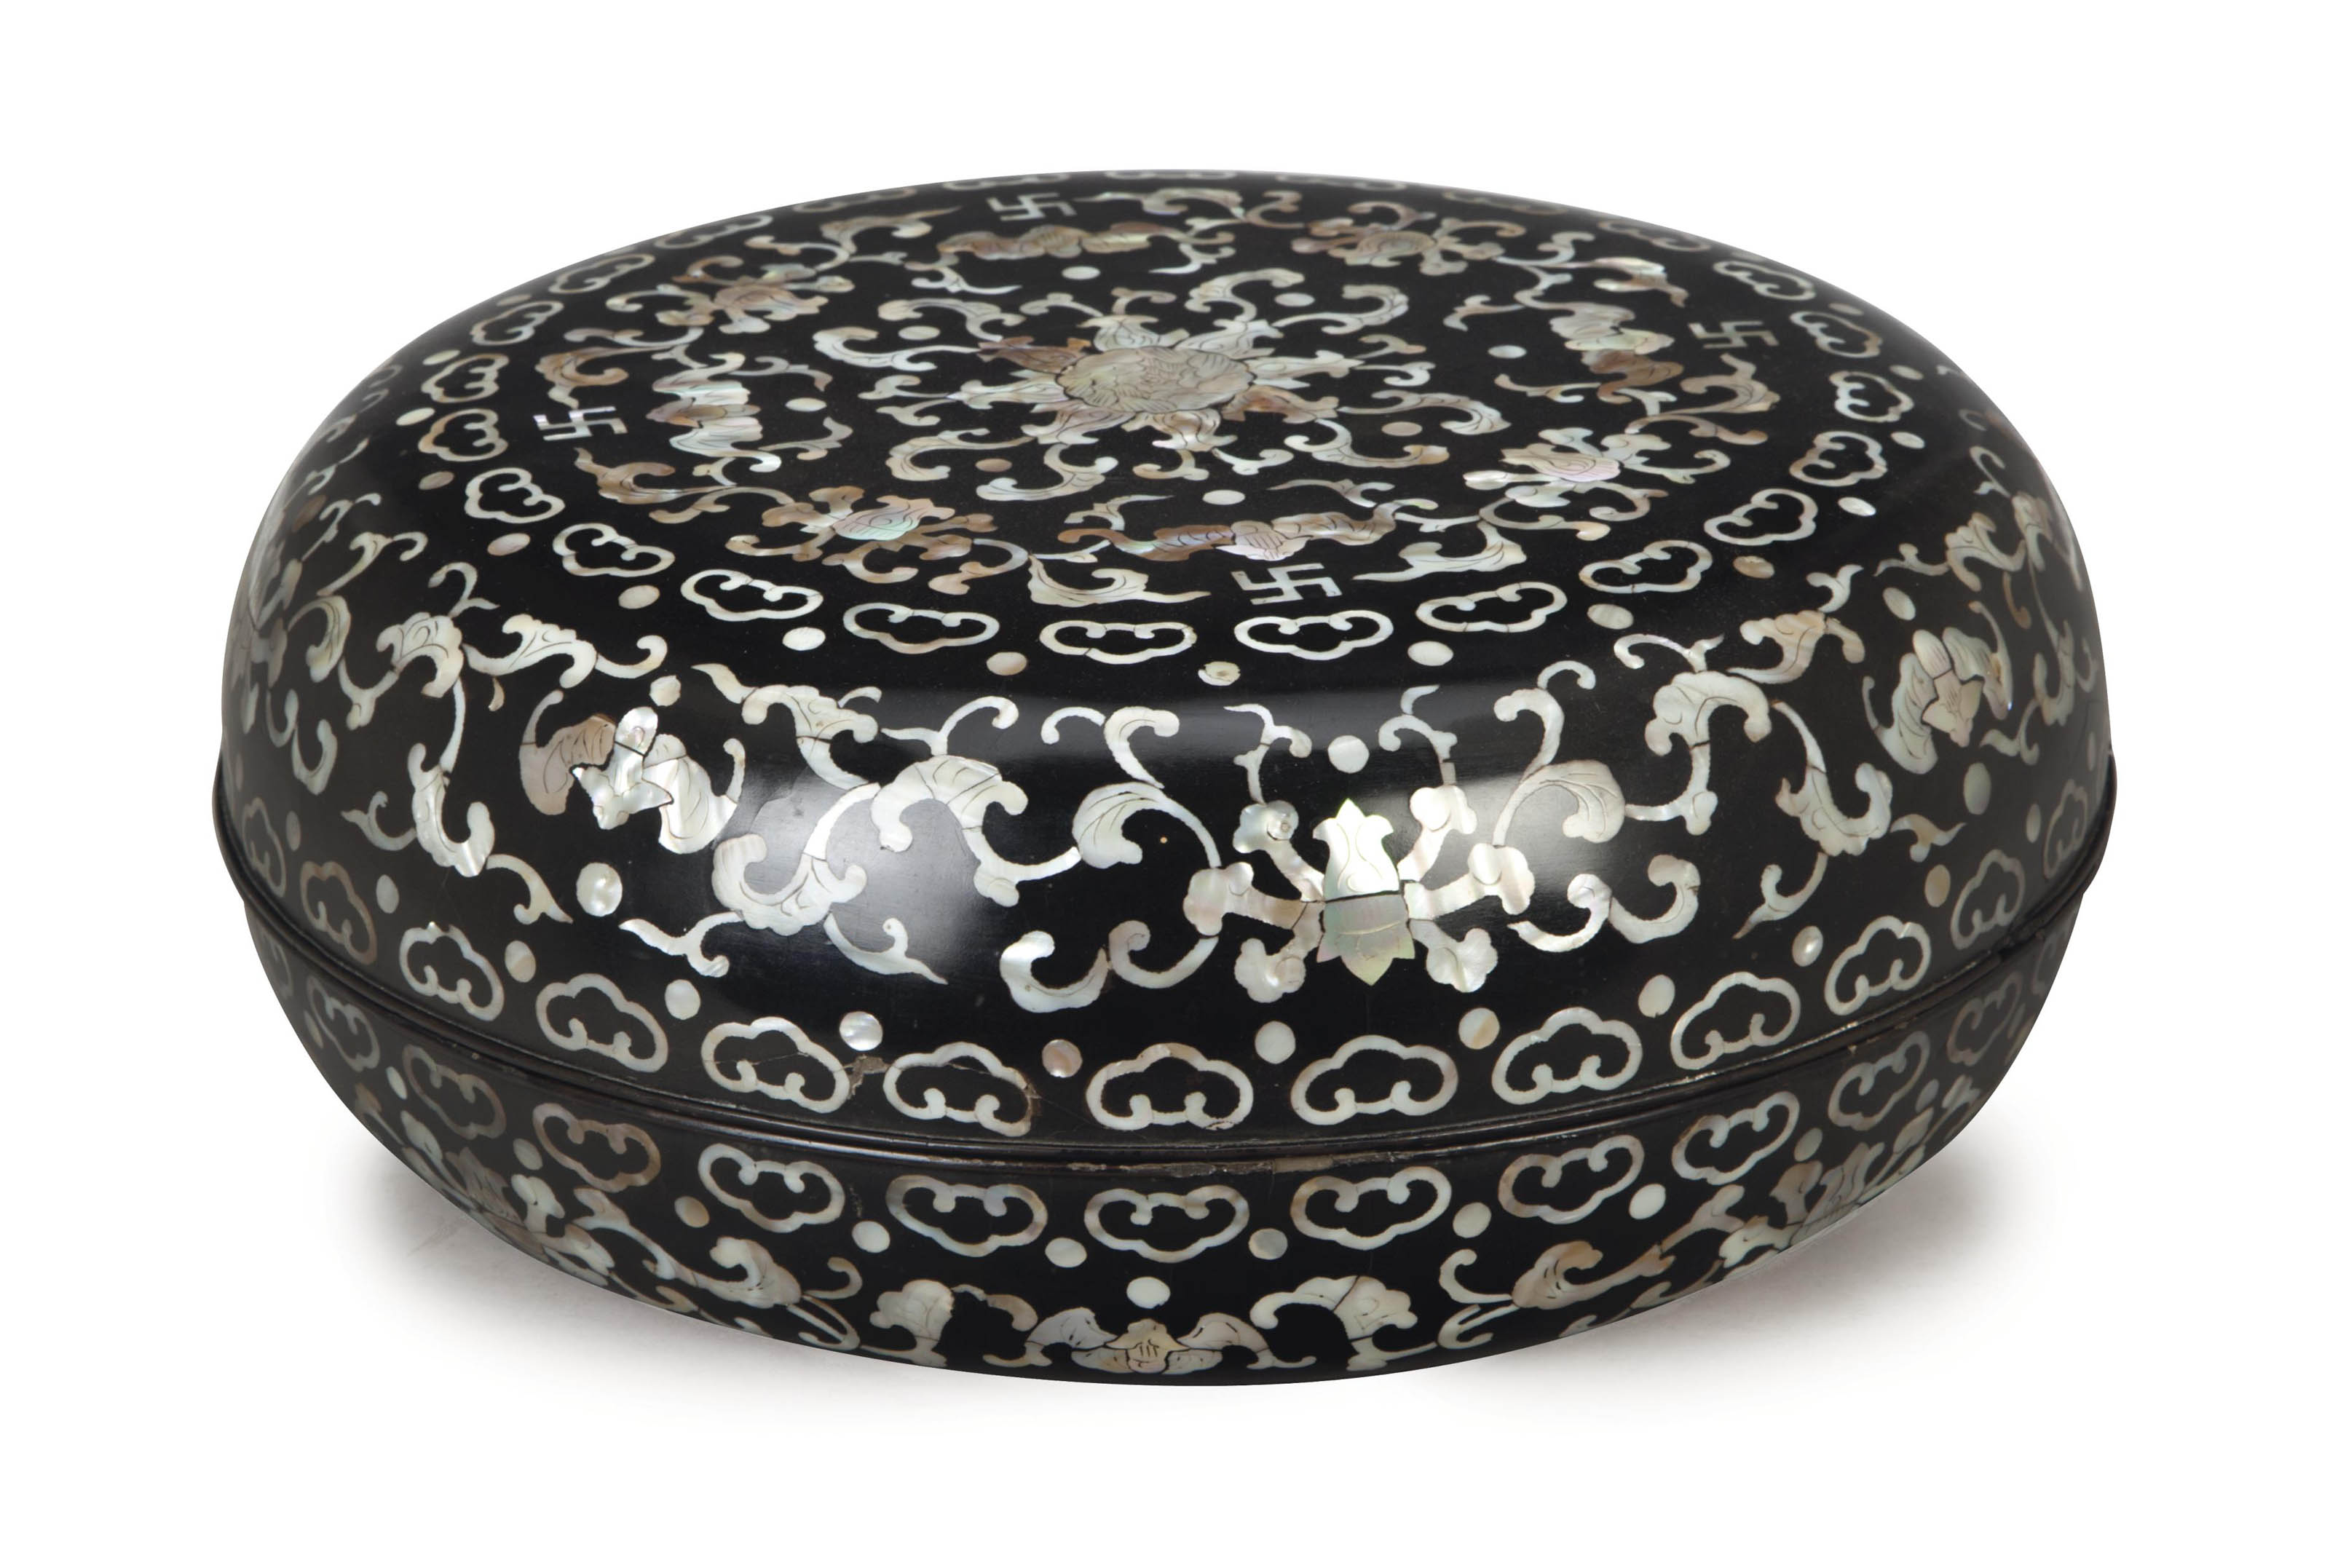 A LARGE CHINESE BLACK LACQUER